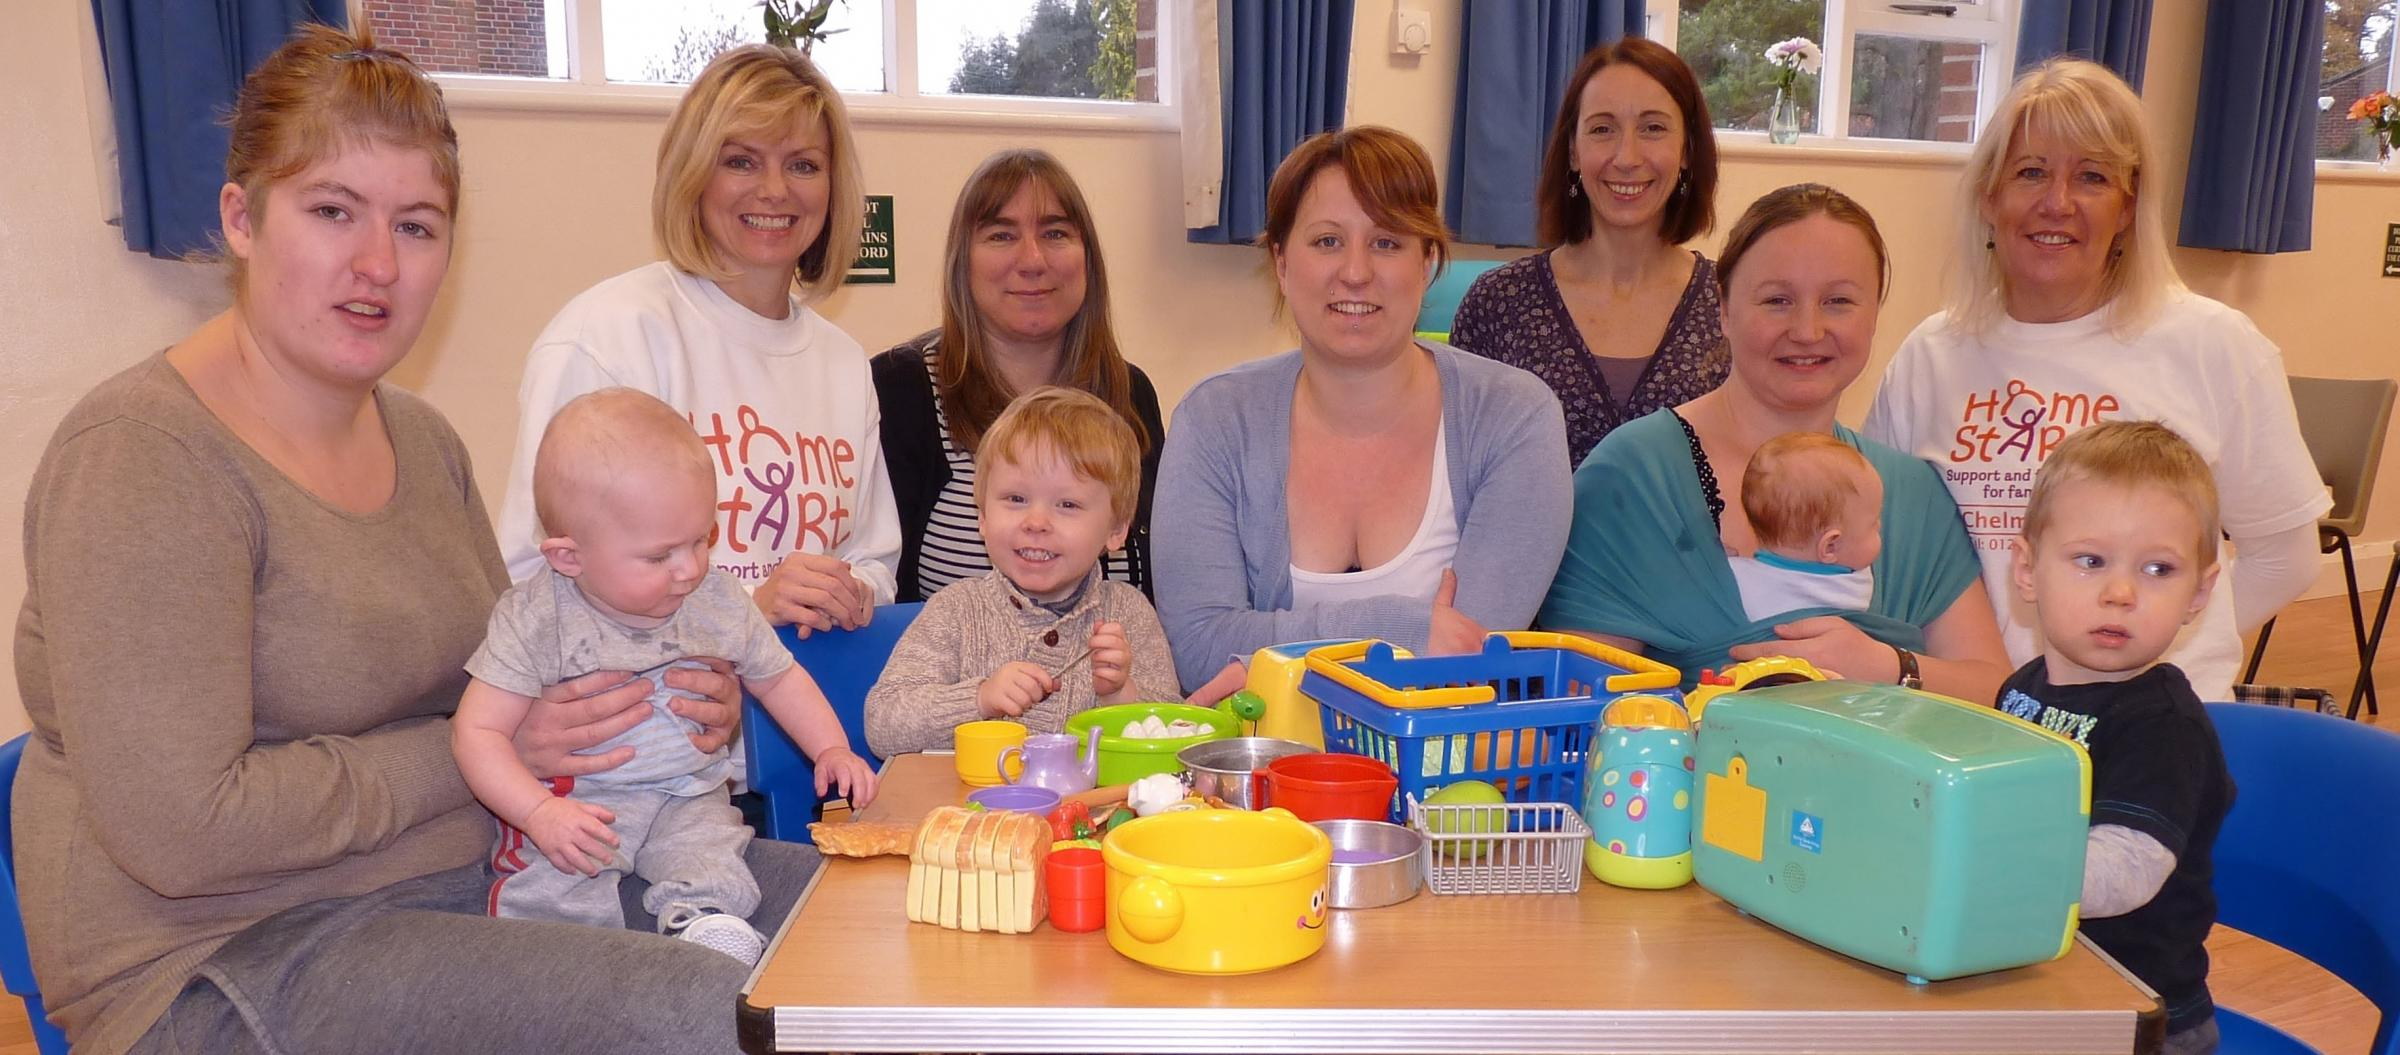 Chelmsford Home-Start staff and users